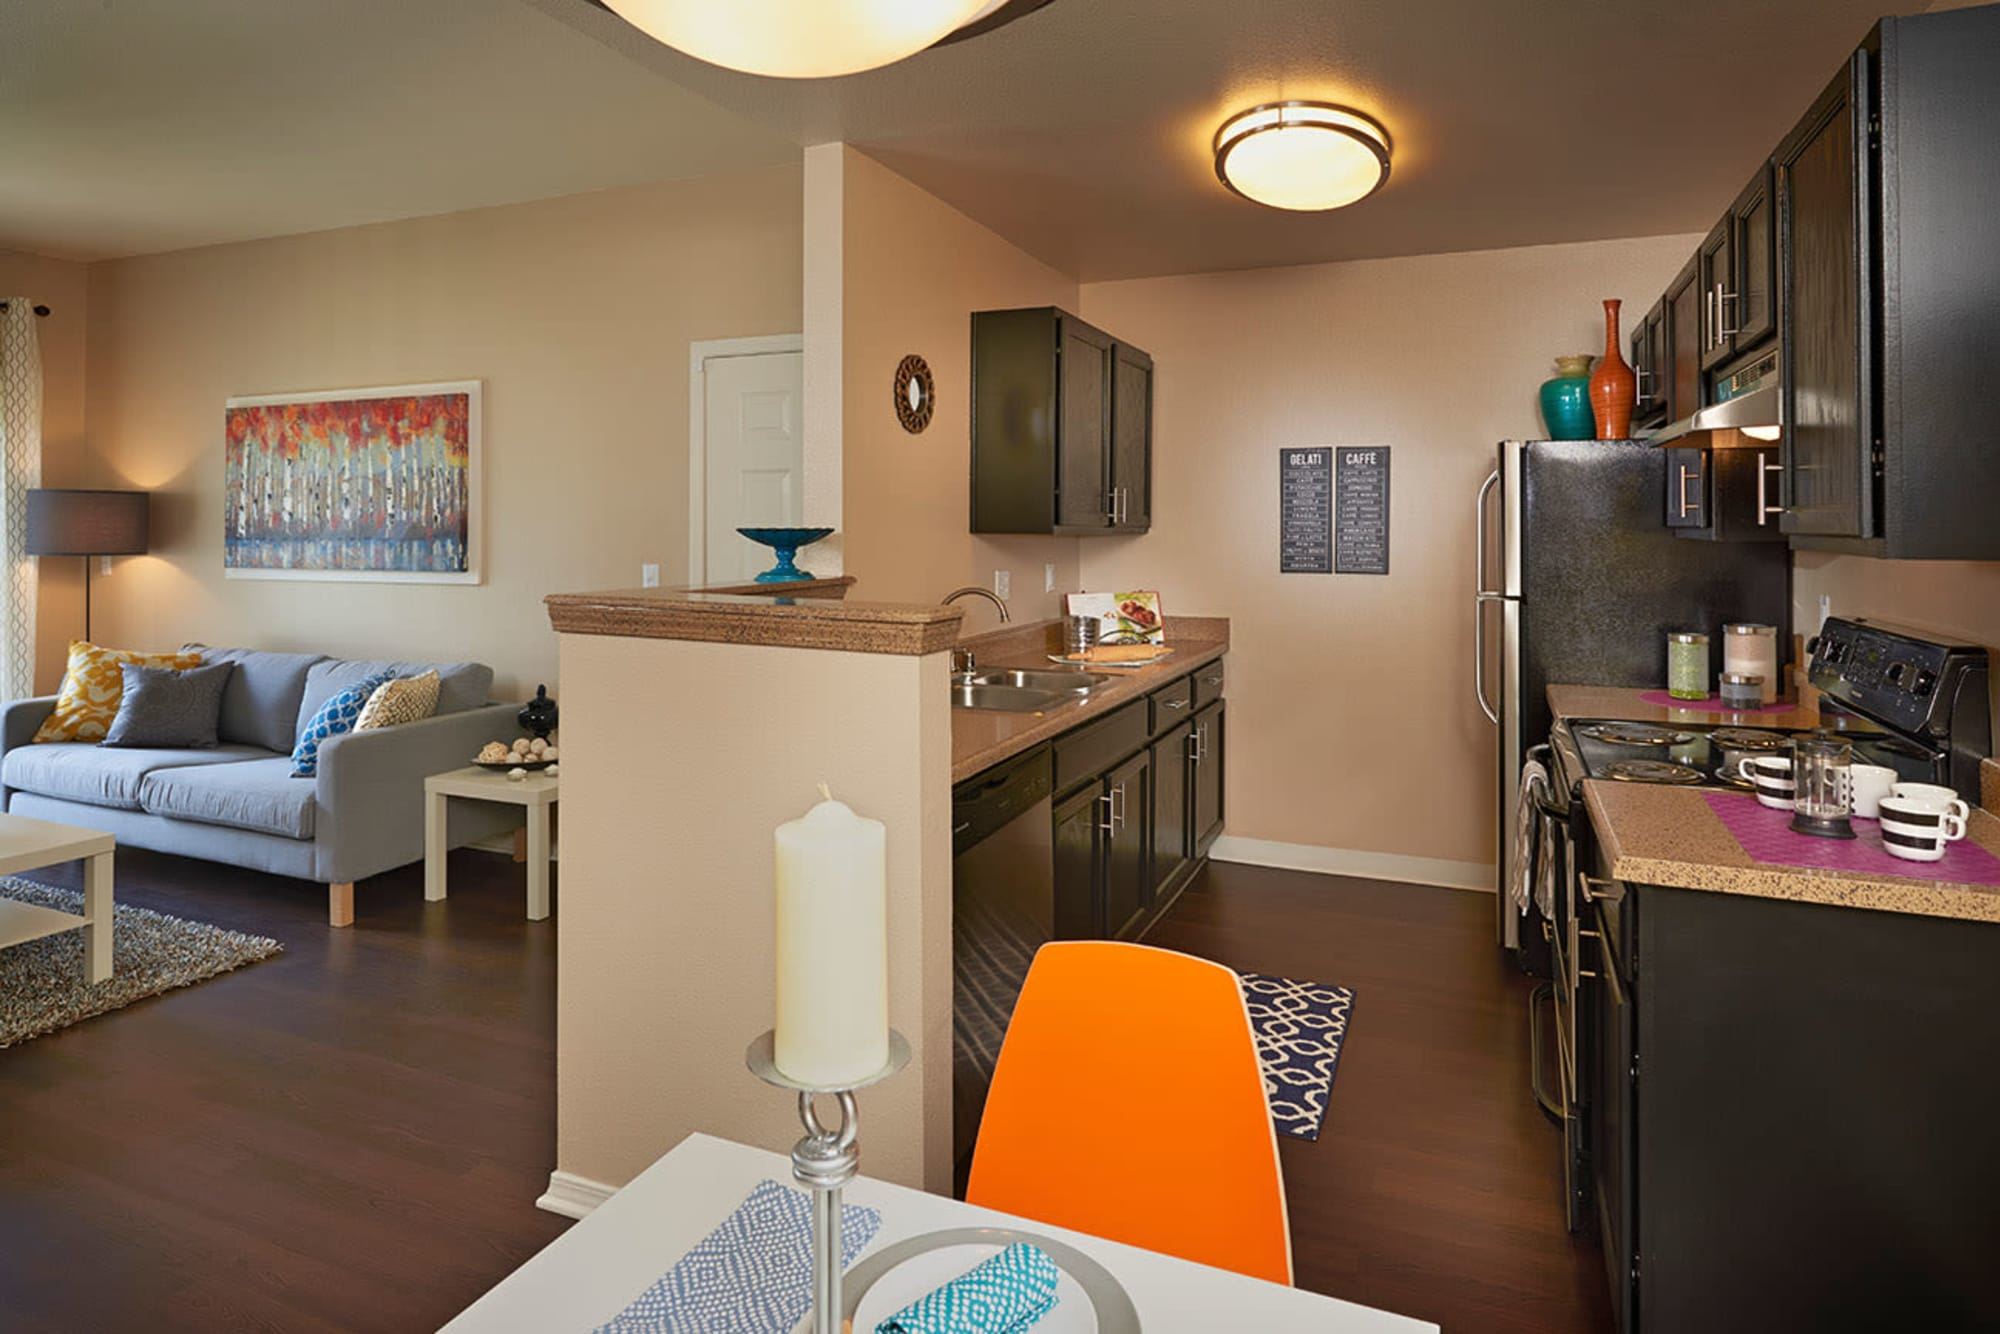 Kitchen and living room at Crossroads at City Center Apartments in Aurora, Colorado